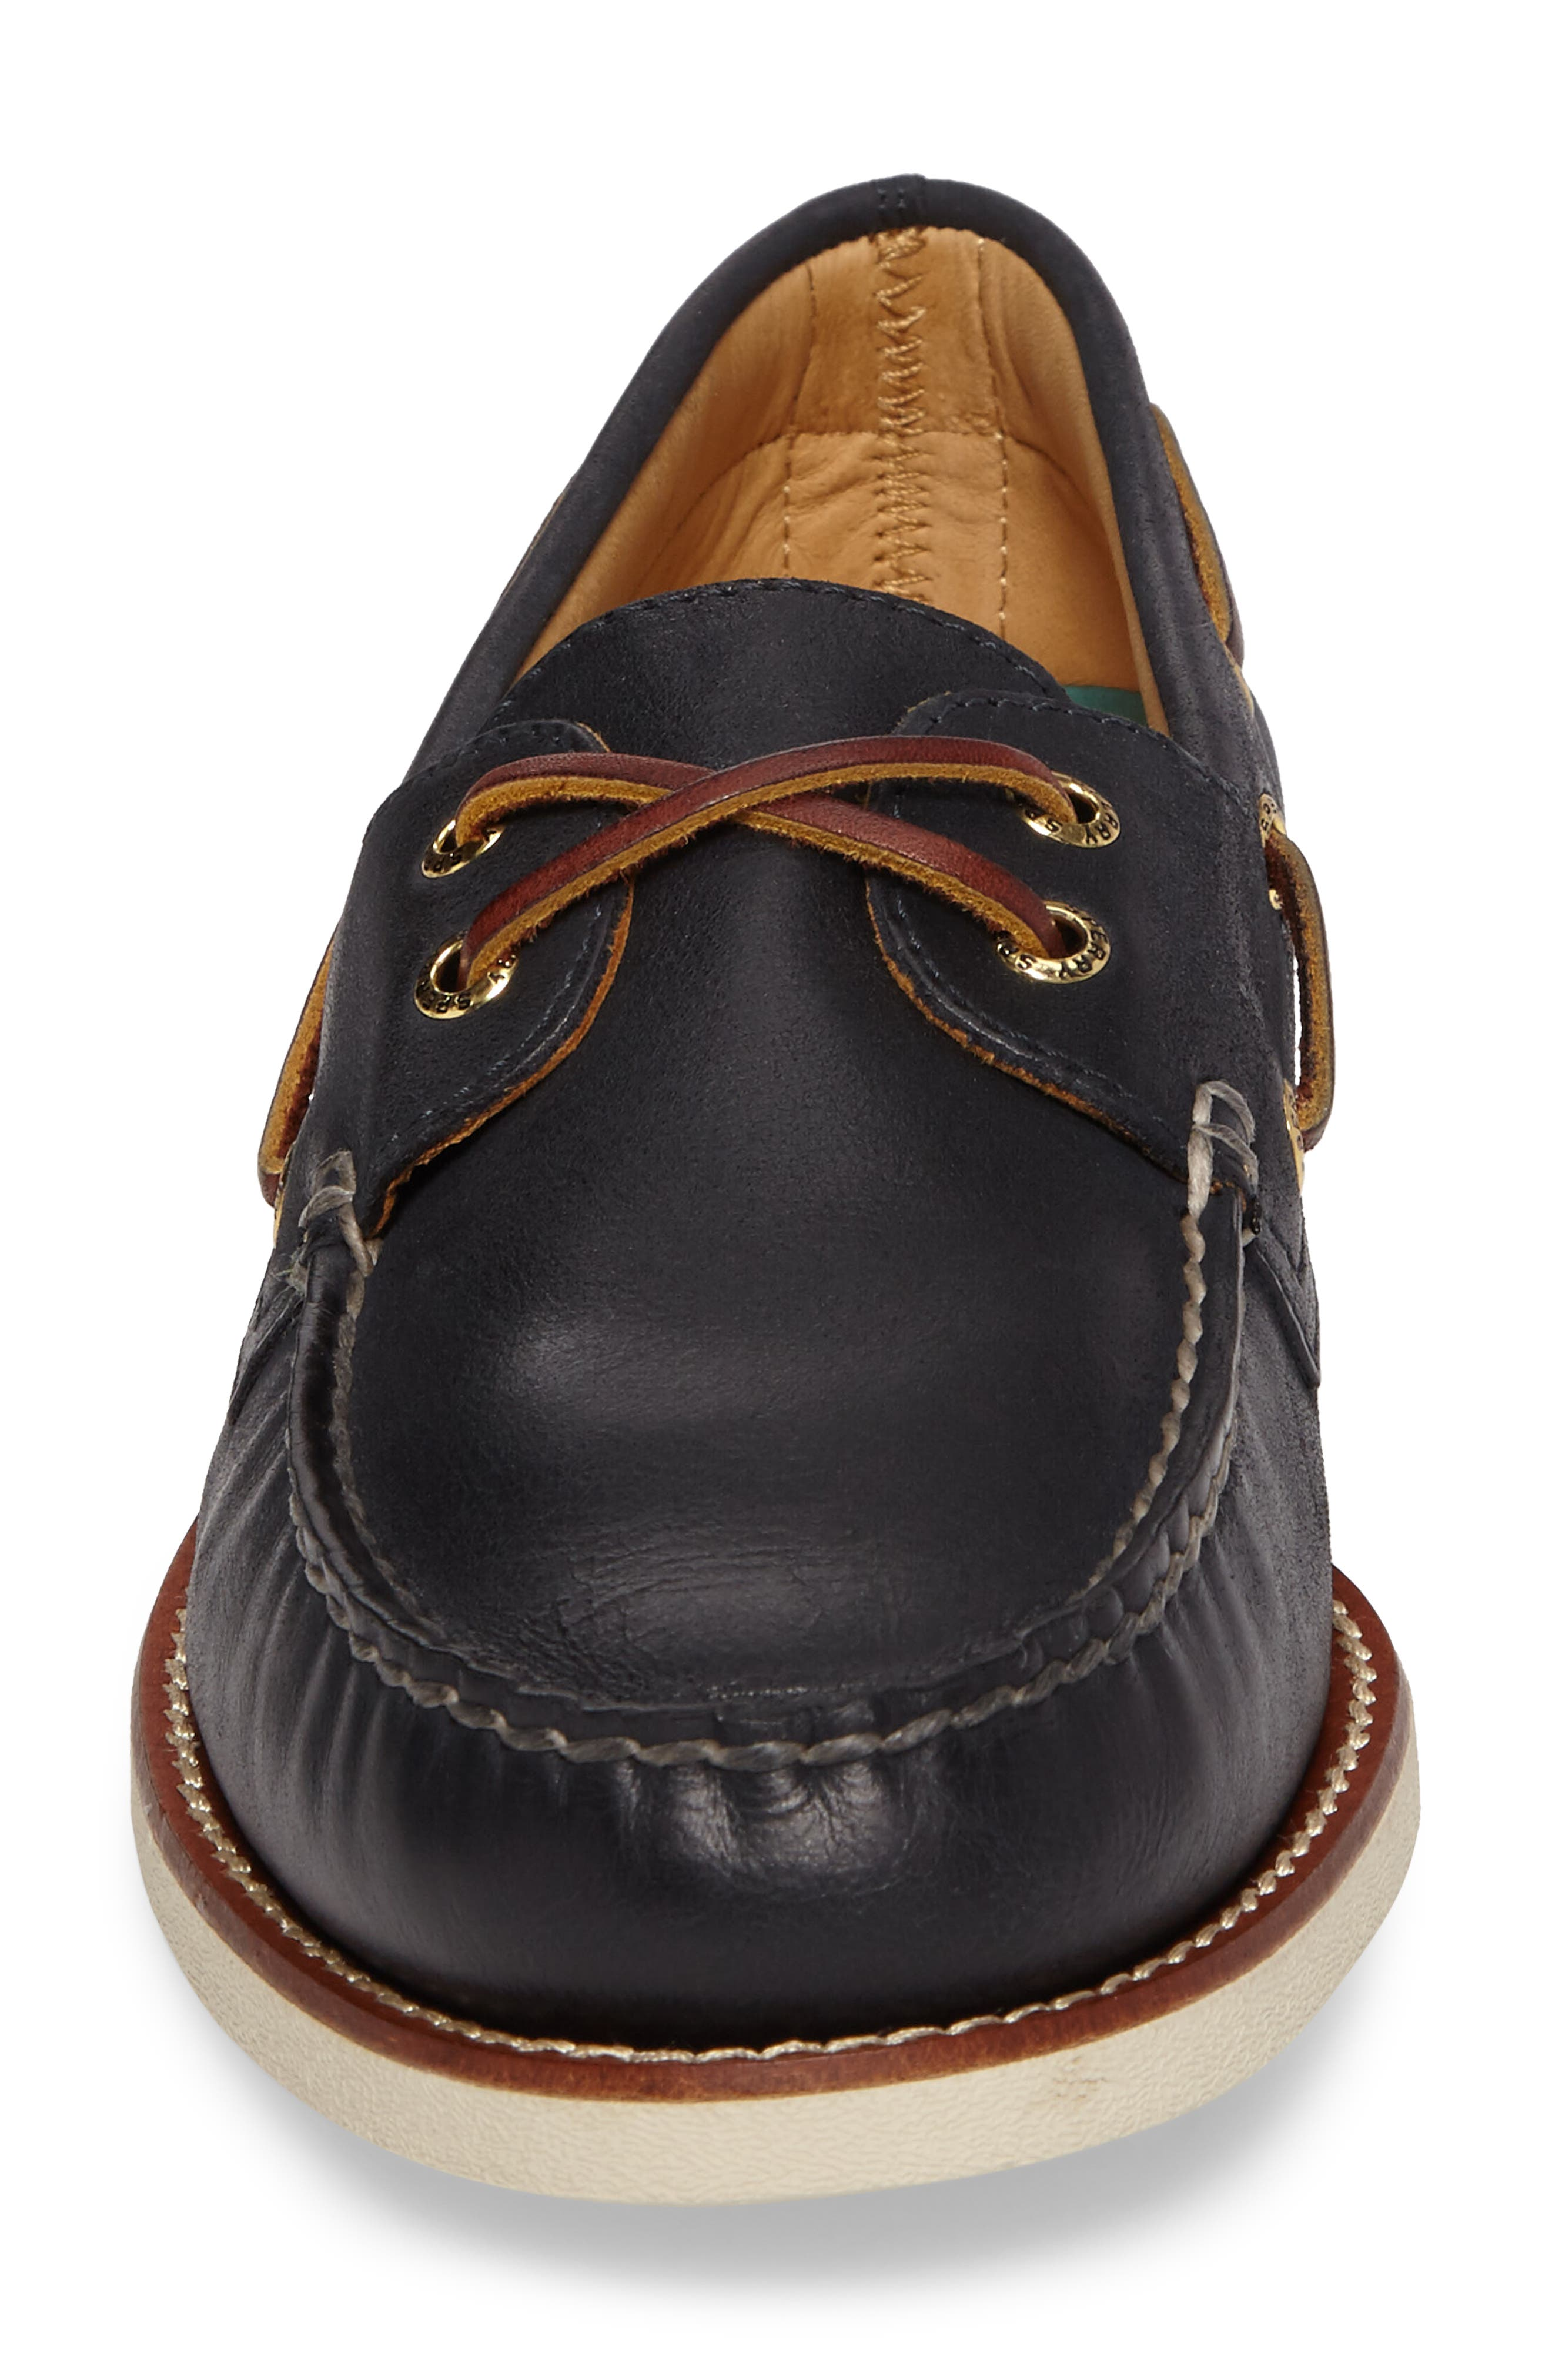 'Gold Cup - Authentic Original' Boat Shoe,                             Alternate thumbnail 4, color,                             NAVY LEATHER